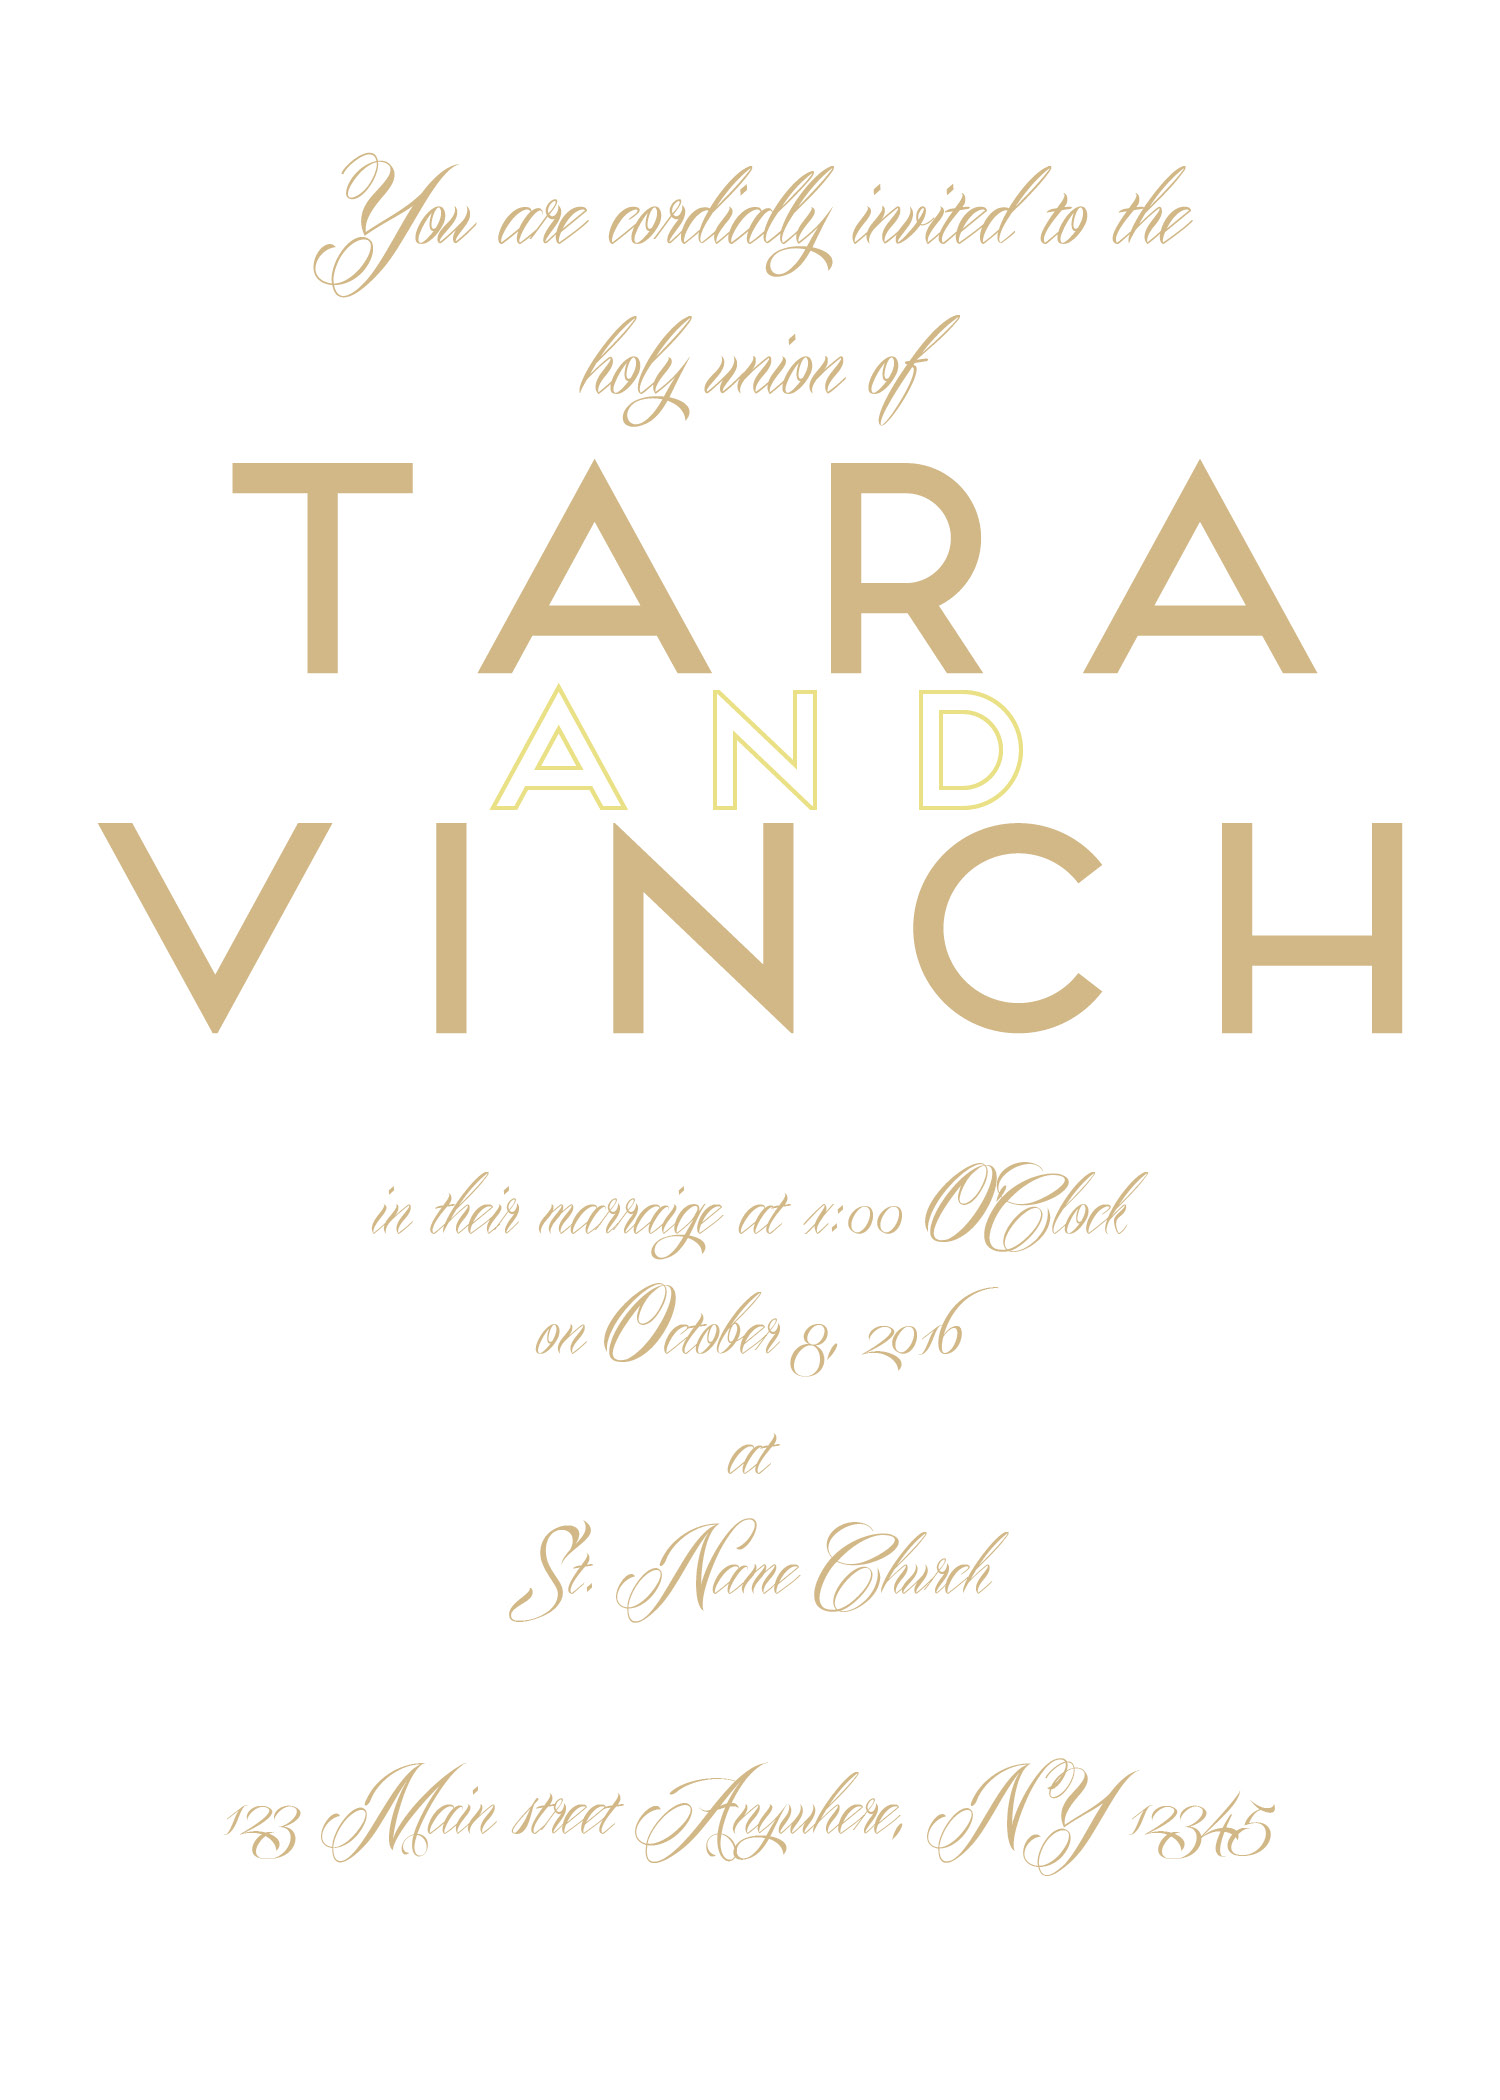 00000516_Tara_Carrozza_Wedding_Invite4.jpg